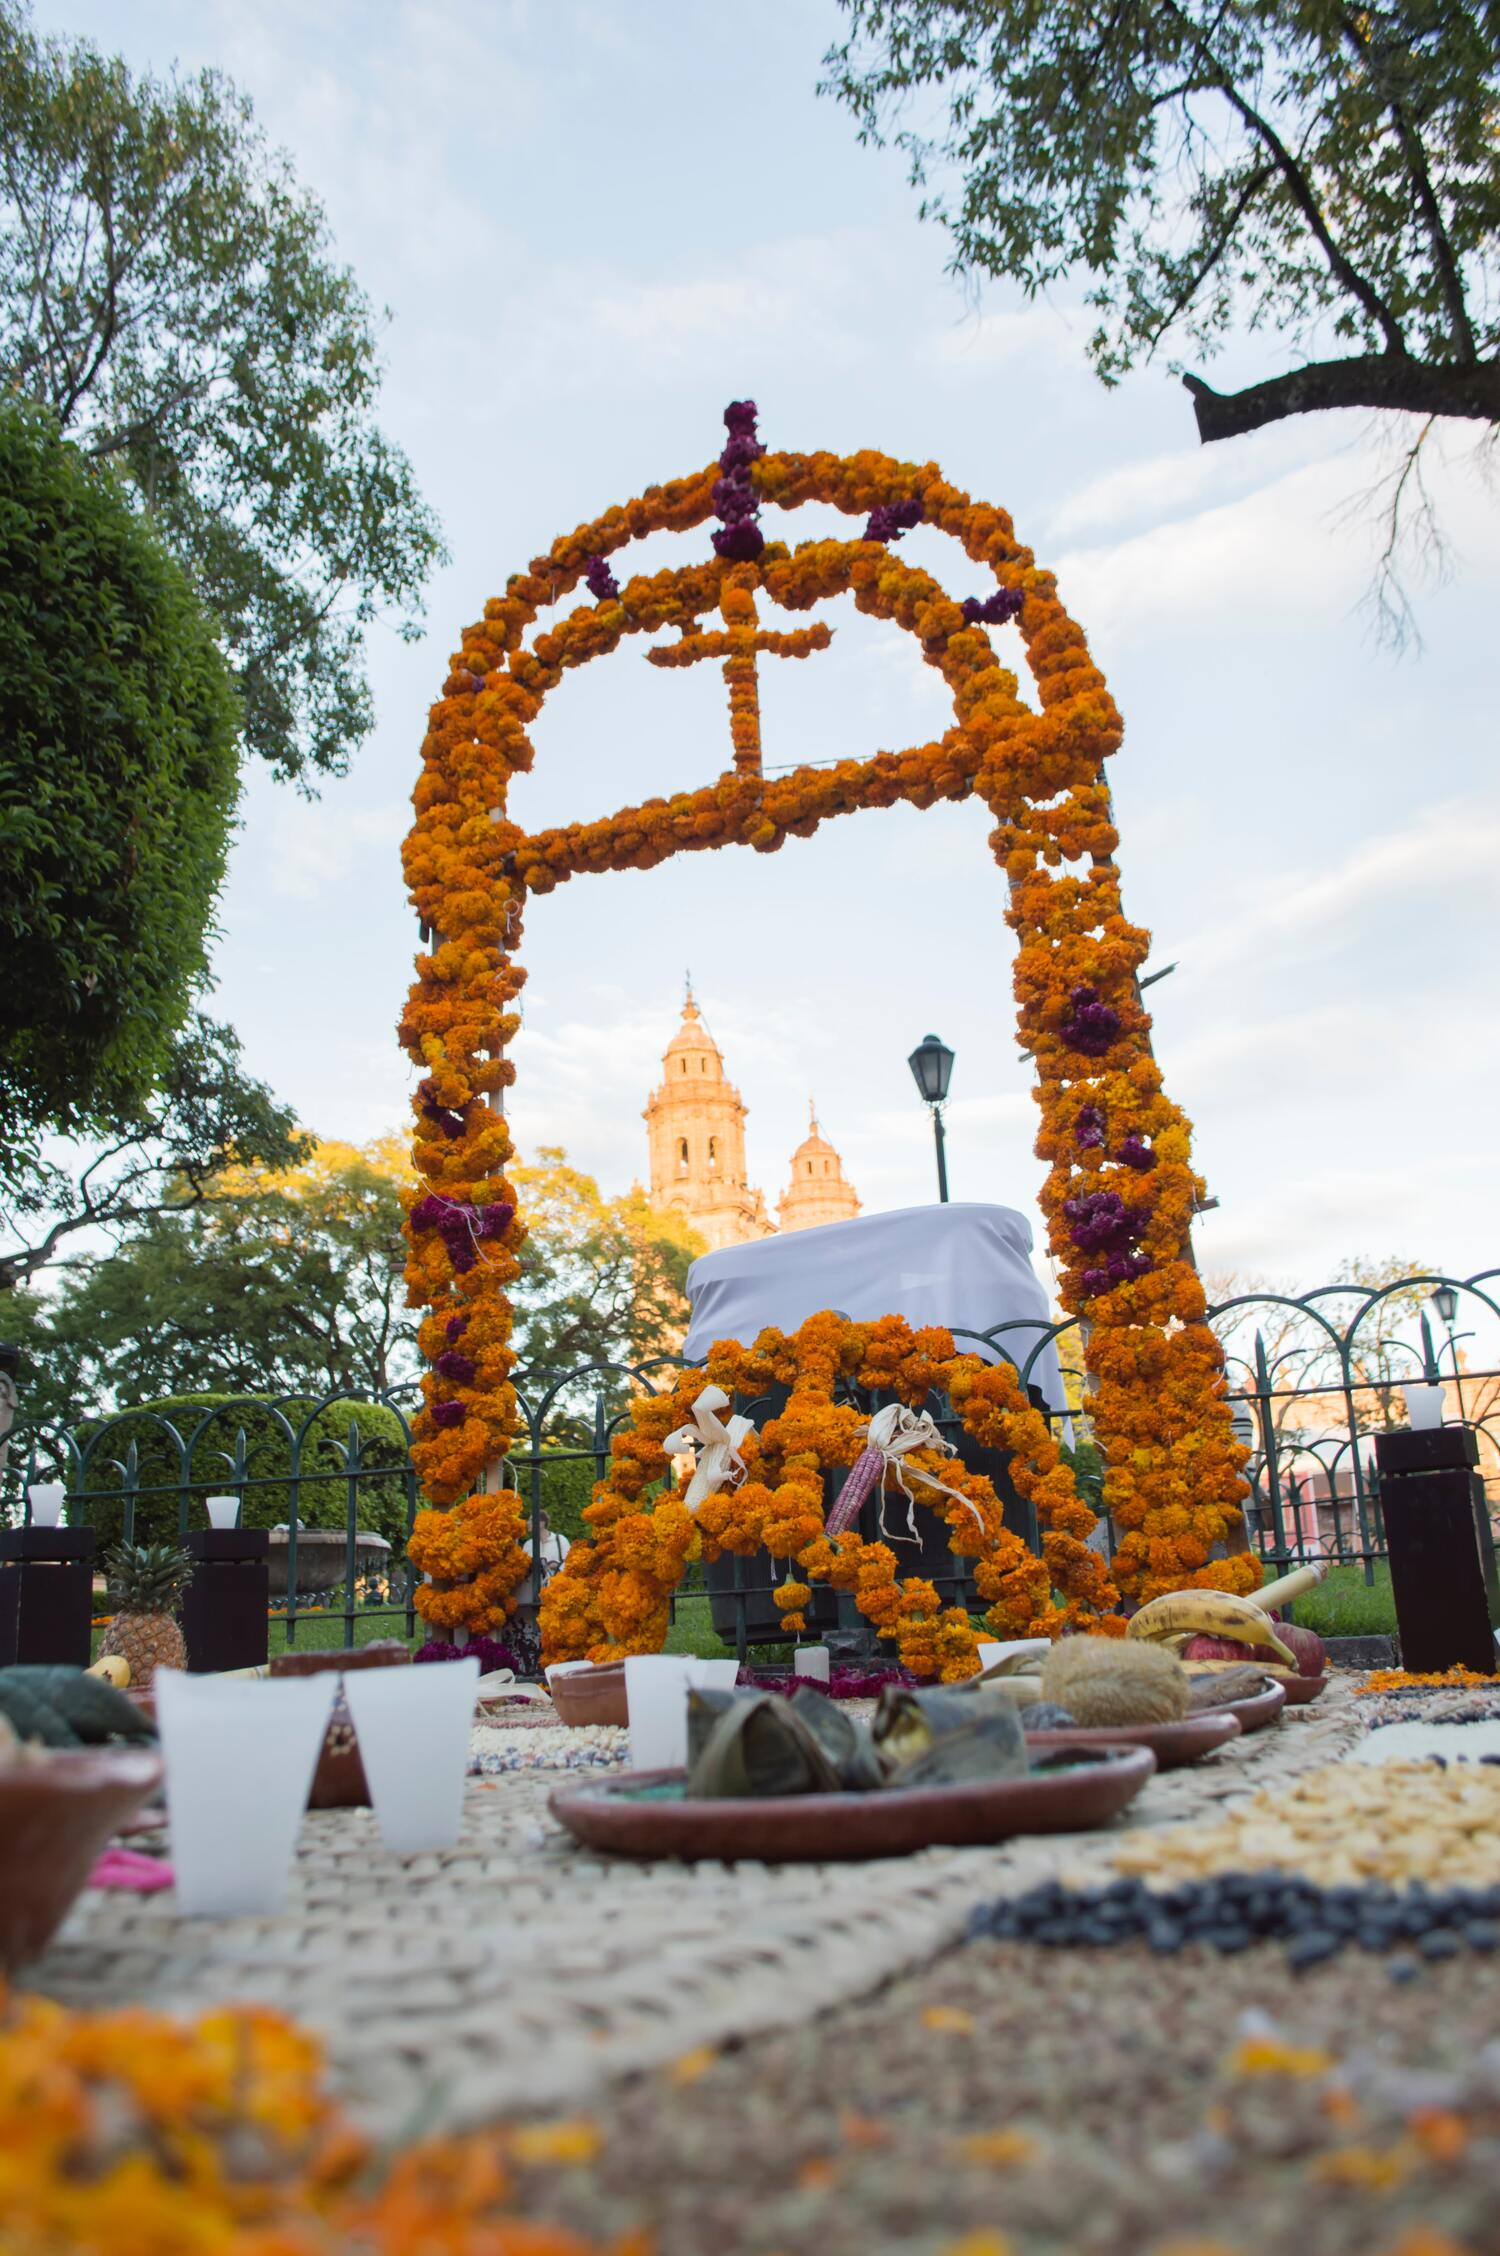 Día de los Muertos is a day to celebrate life, not death